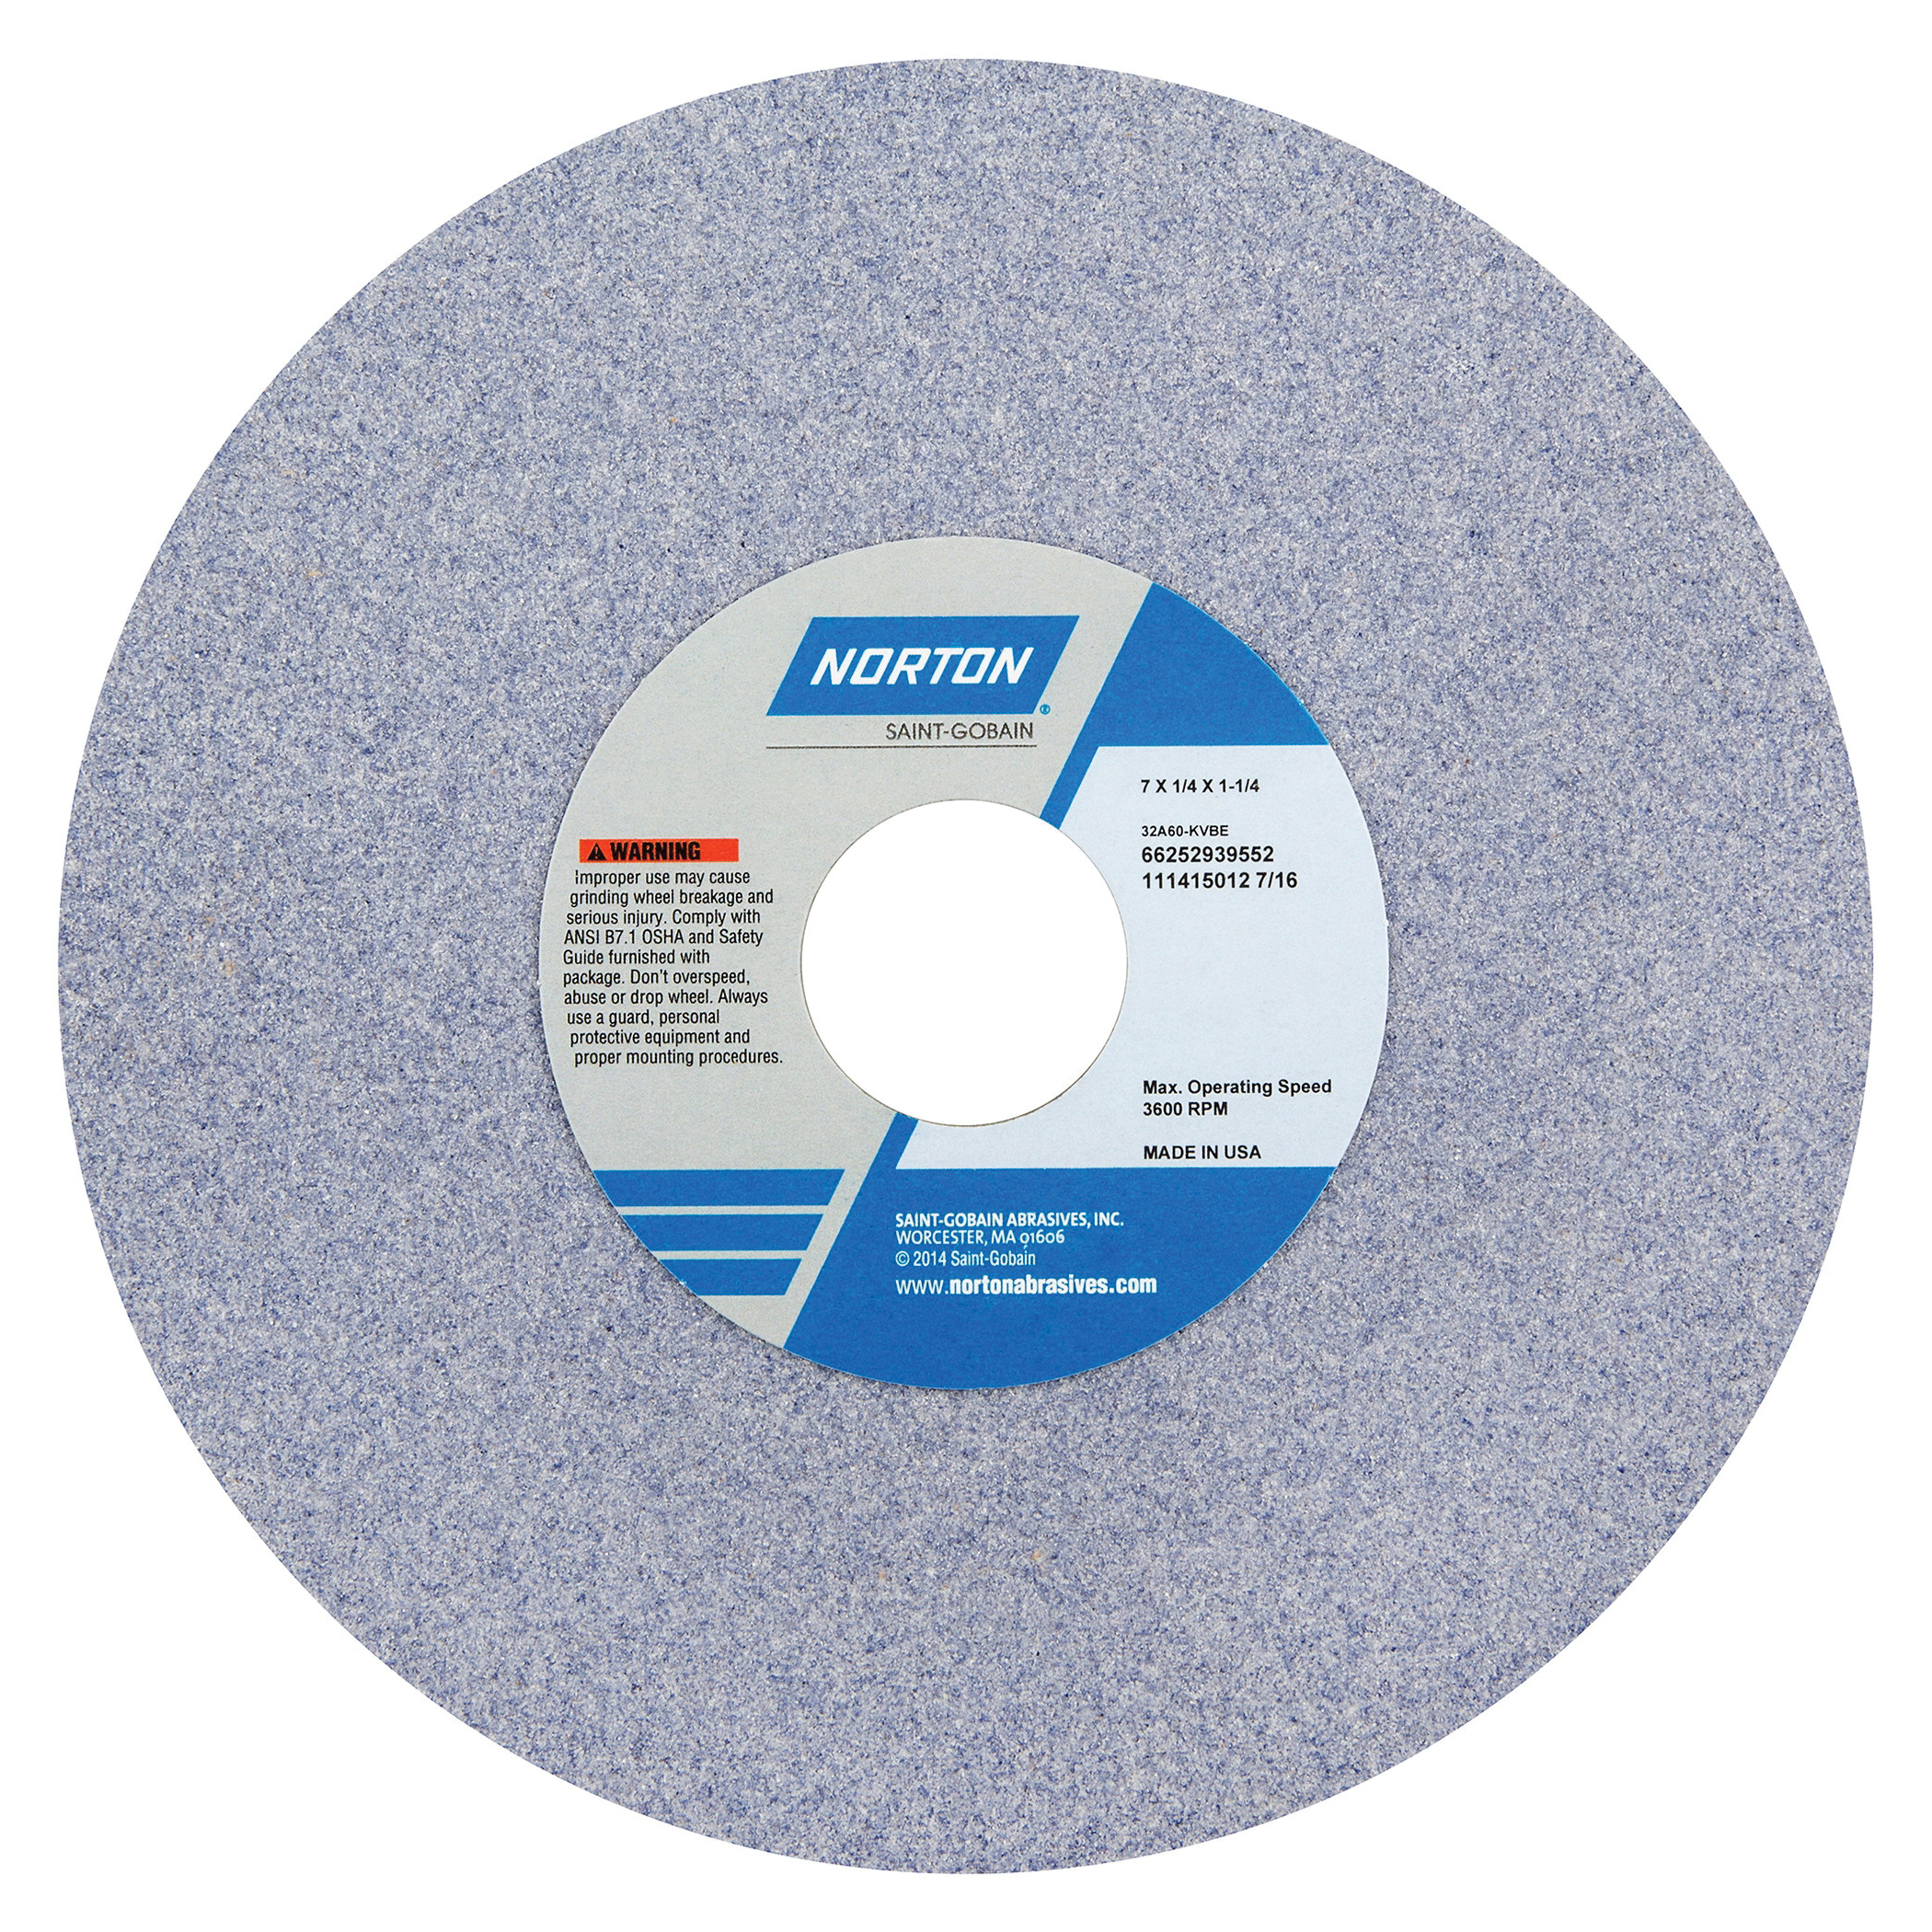 Norton® 66252939680 32A Straight Toolroom Wheel, 7 in Dia x 1/4 in THK, 1-1/4 in Center Hole, 120 Grit, Aluminum Oxide Abrasive